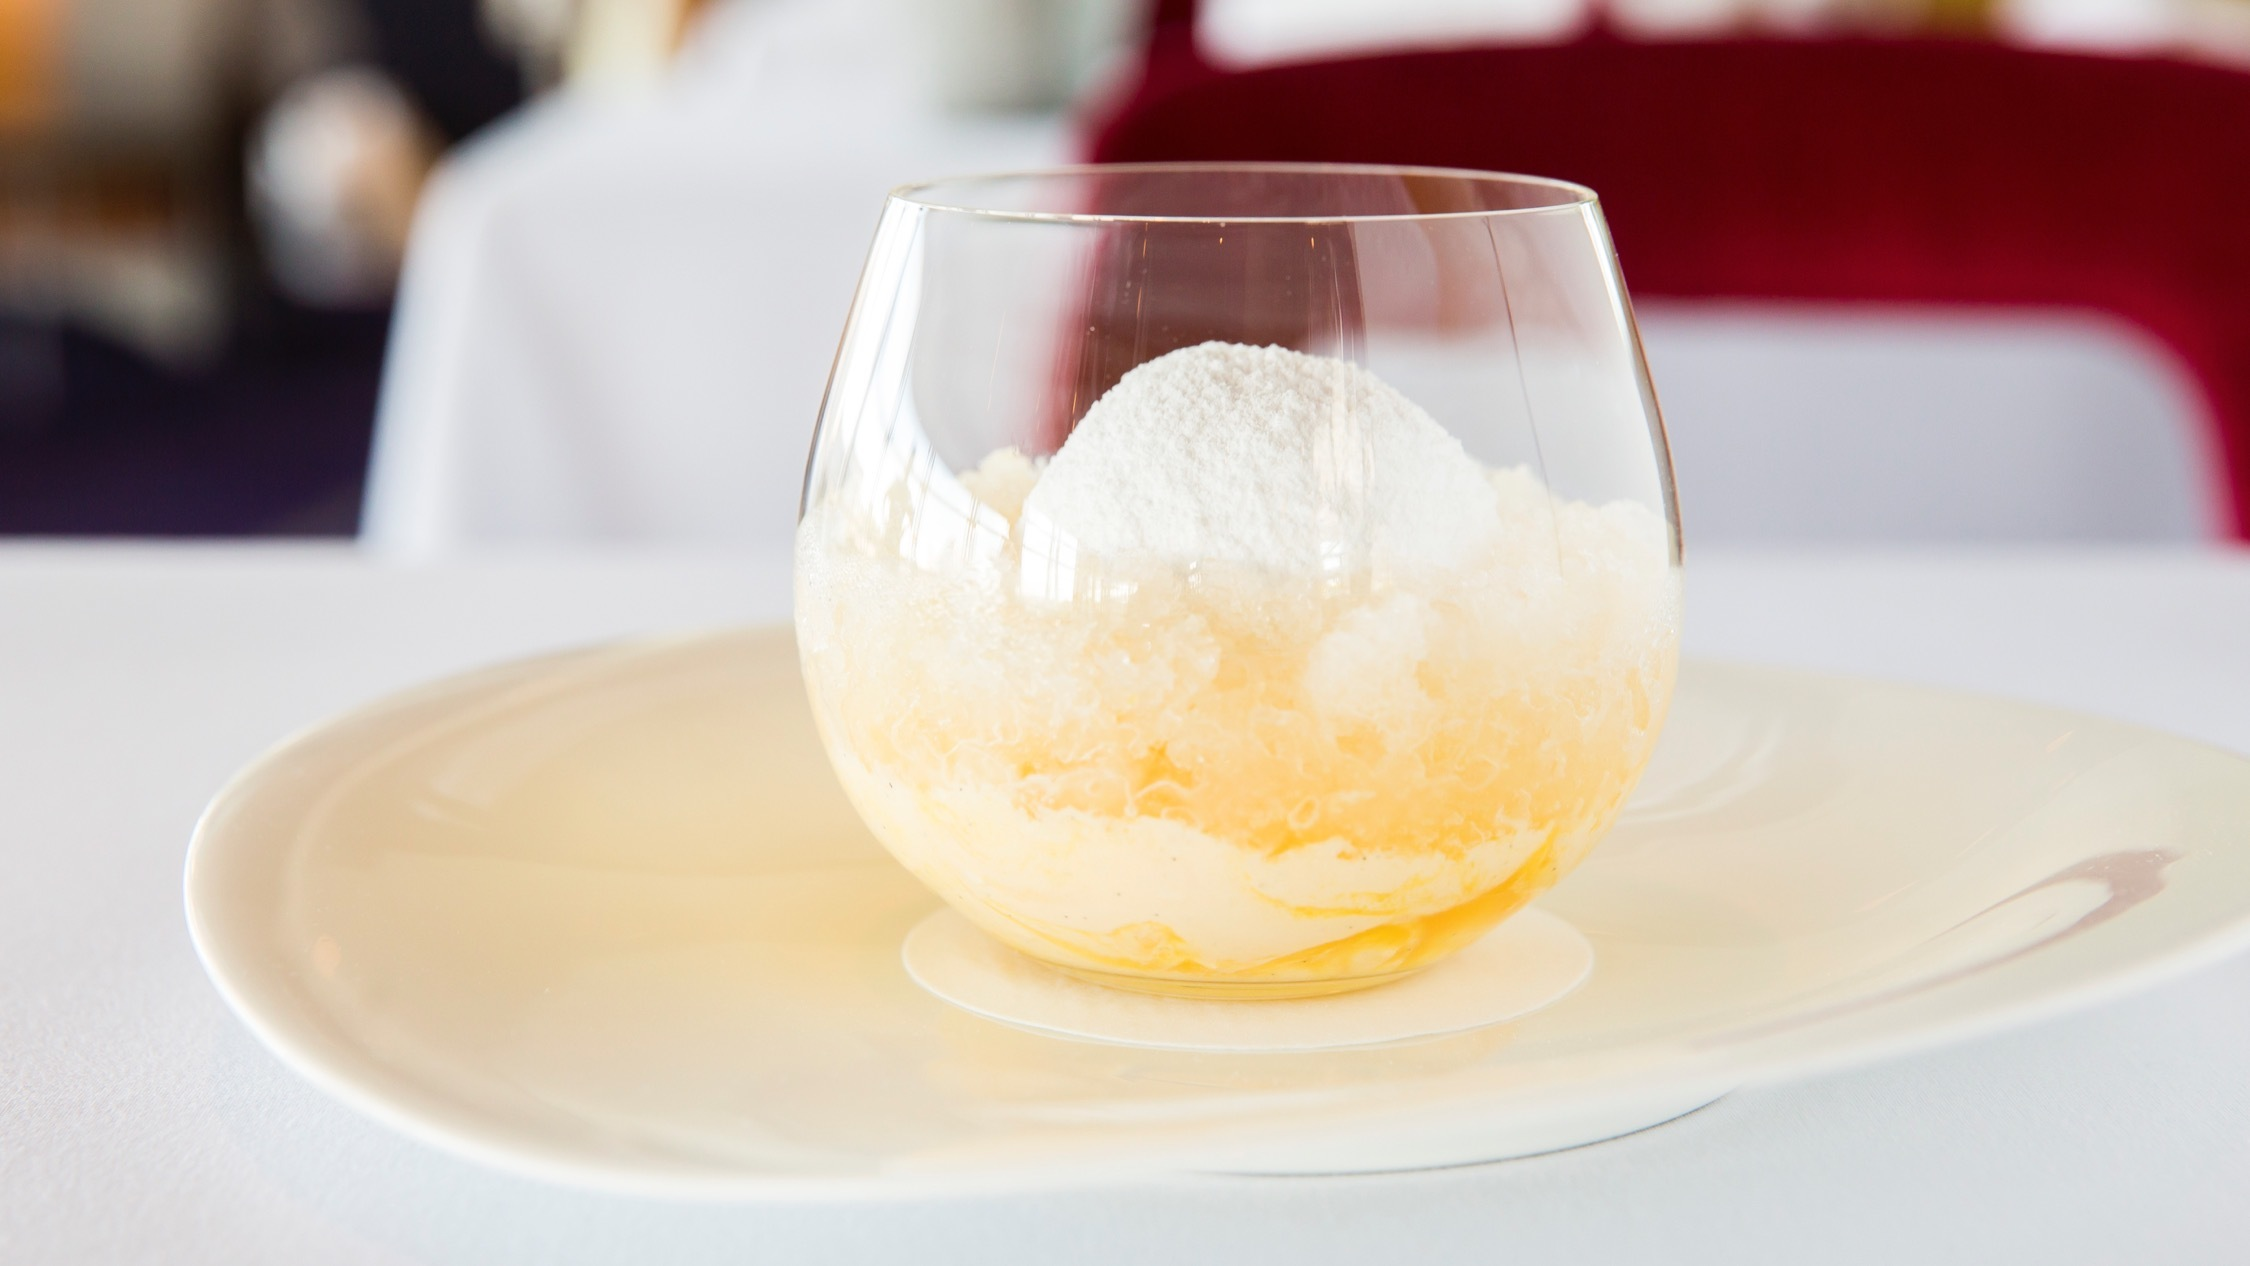 Quay's famous snow egg dessert will be taken off the menu this April